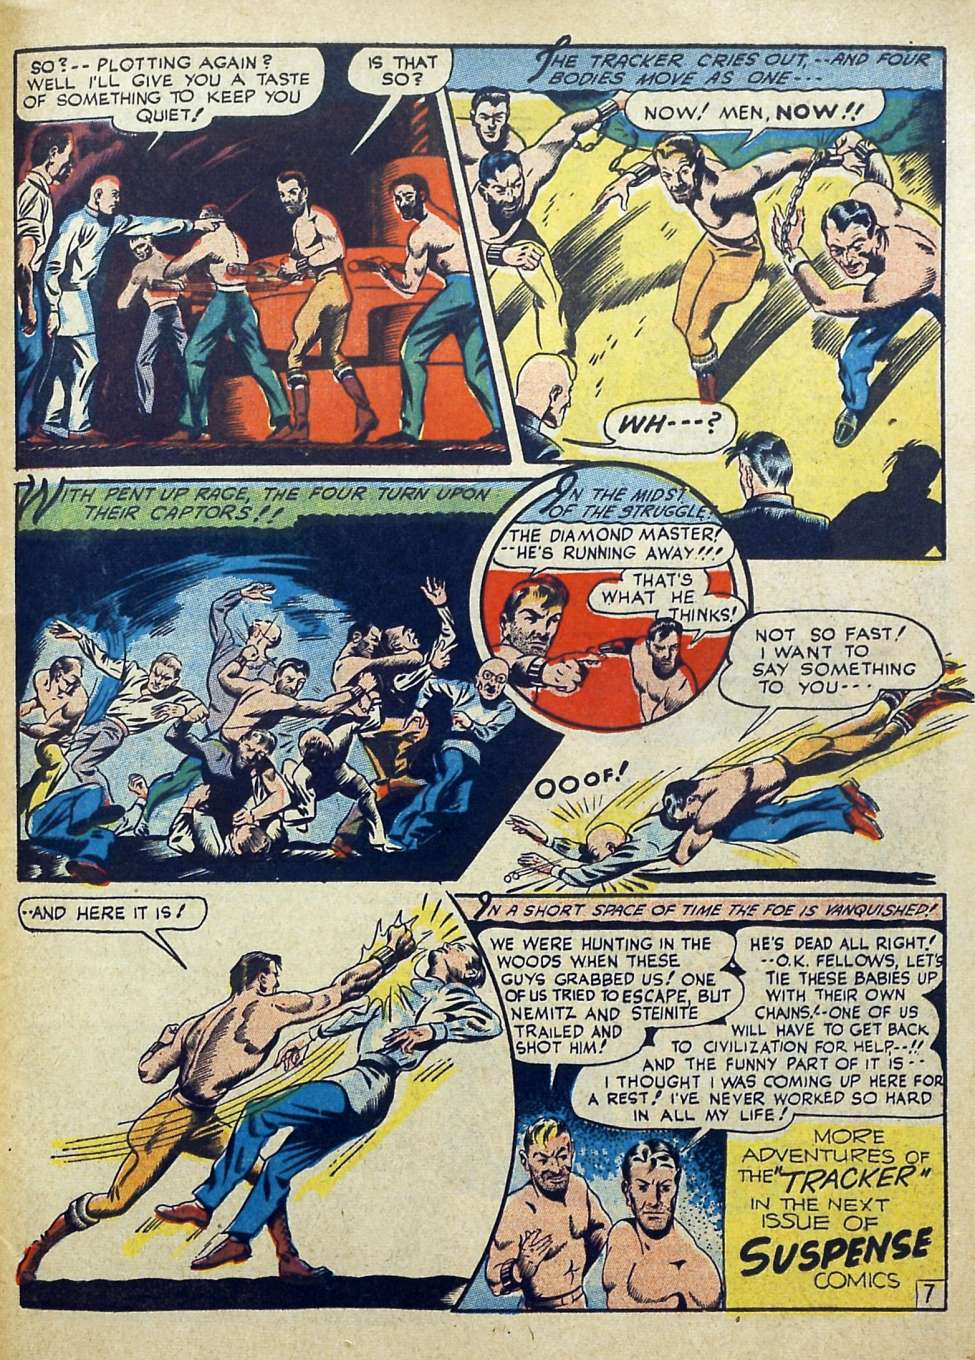 Suspense Comics #3 from 1944 51